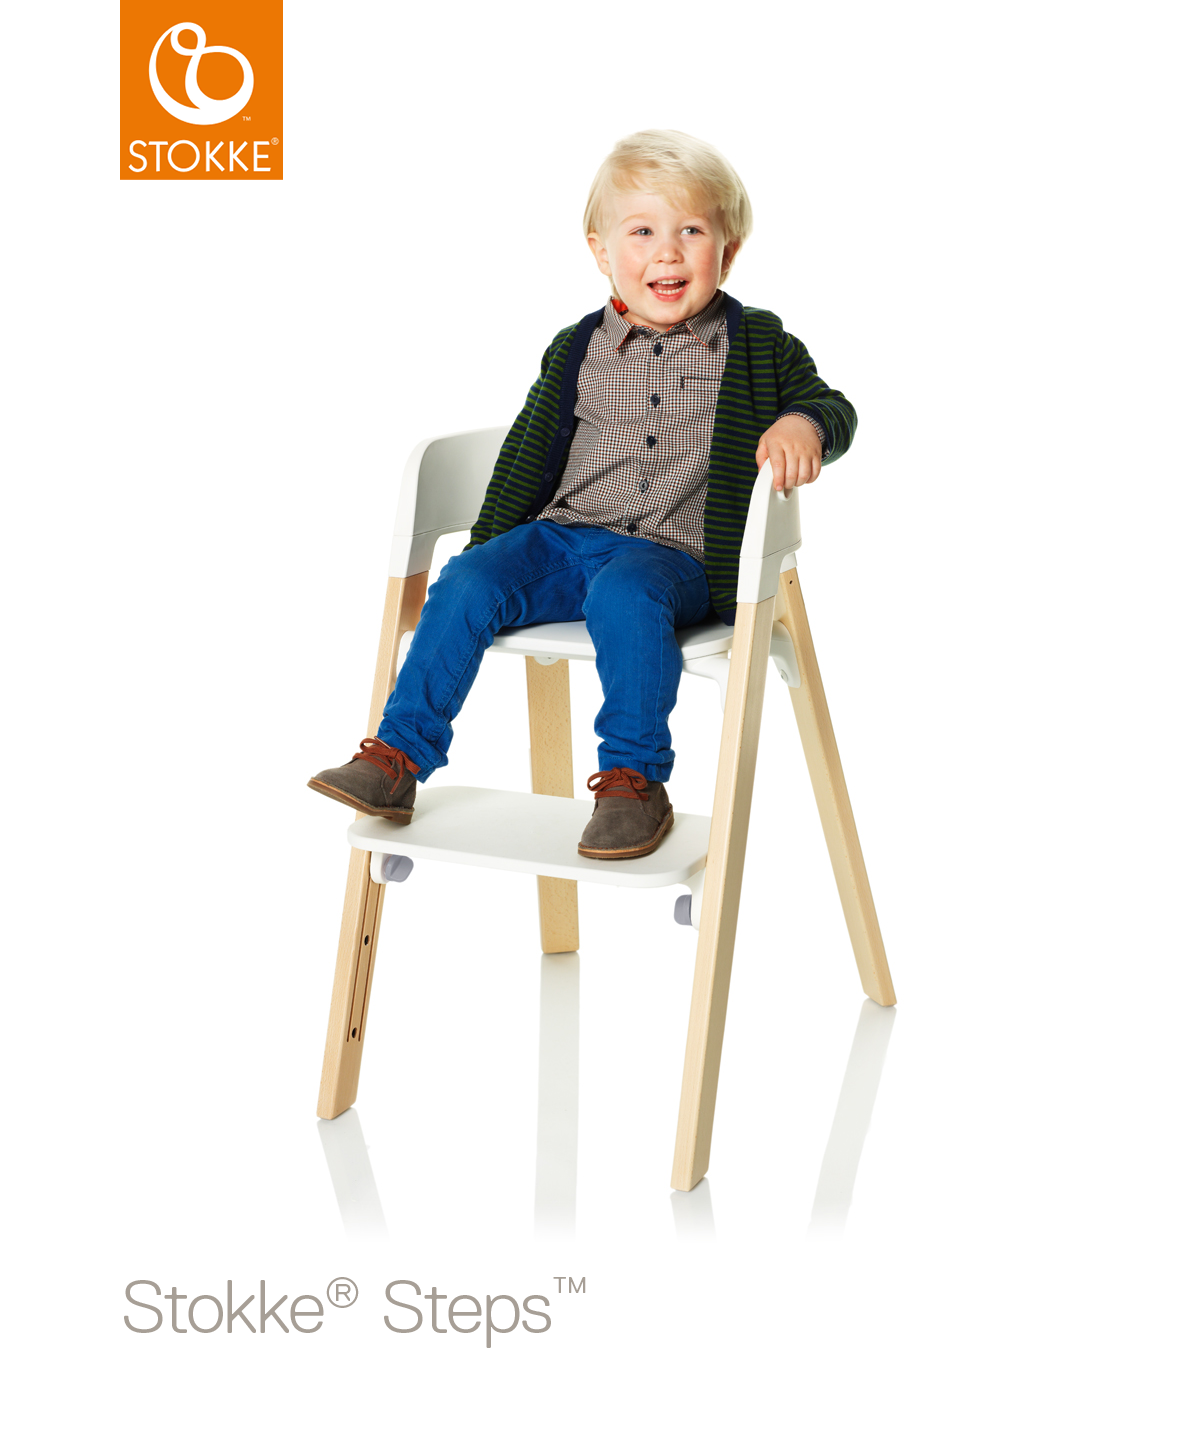 stokke steps beuken hazy grey kinderstoelen legs online kopen stokke. Black Bedroom Furniture Sets. Home Design Ideas